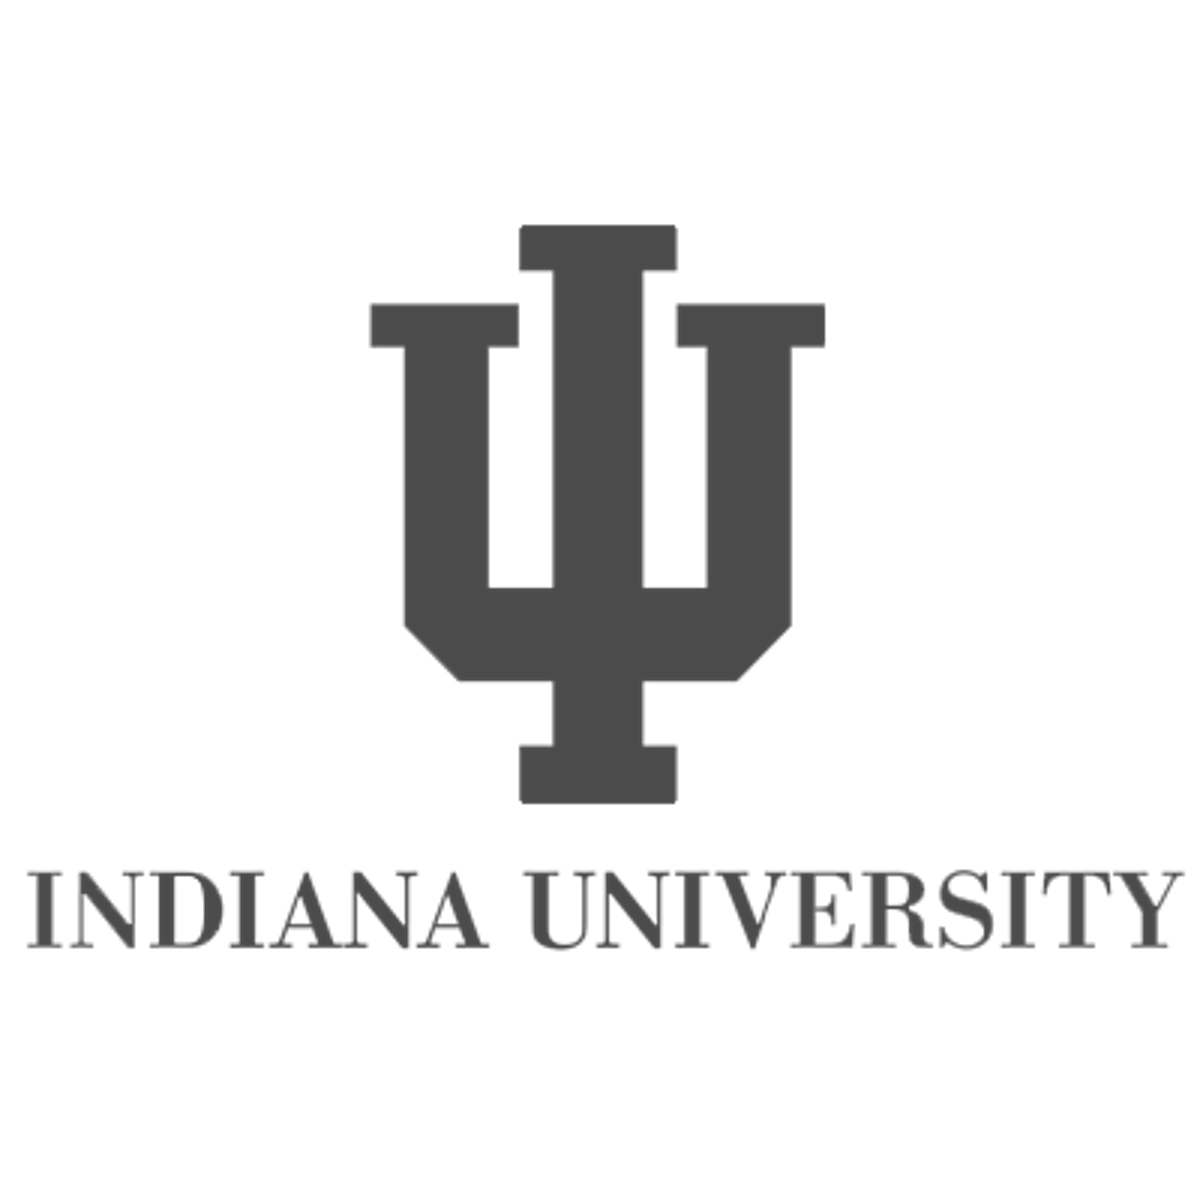 Indiana University Campus Protein